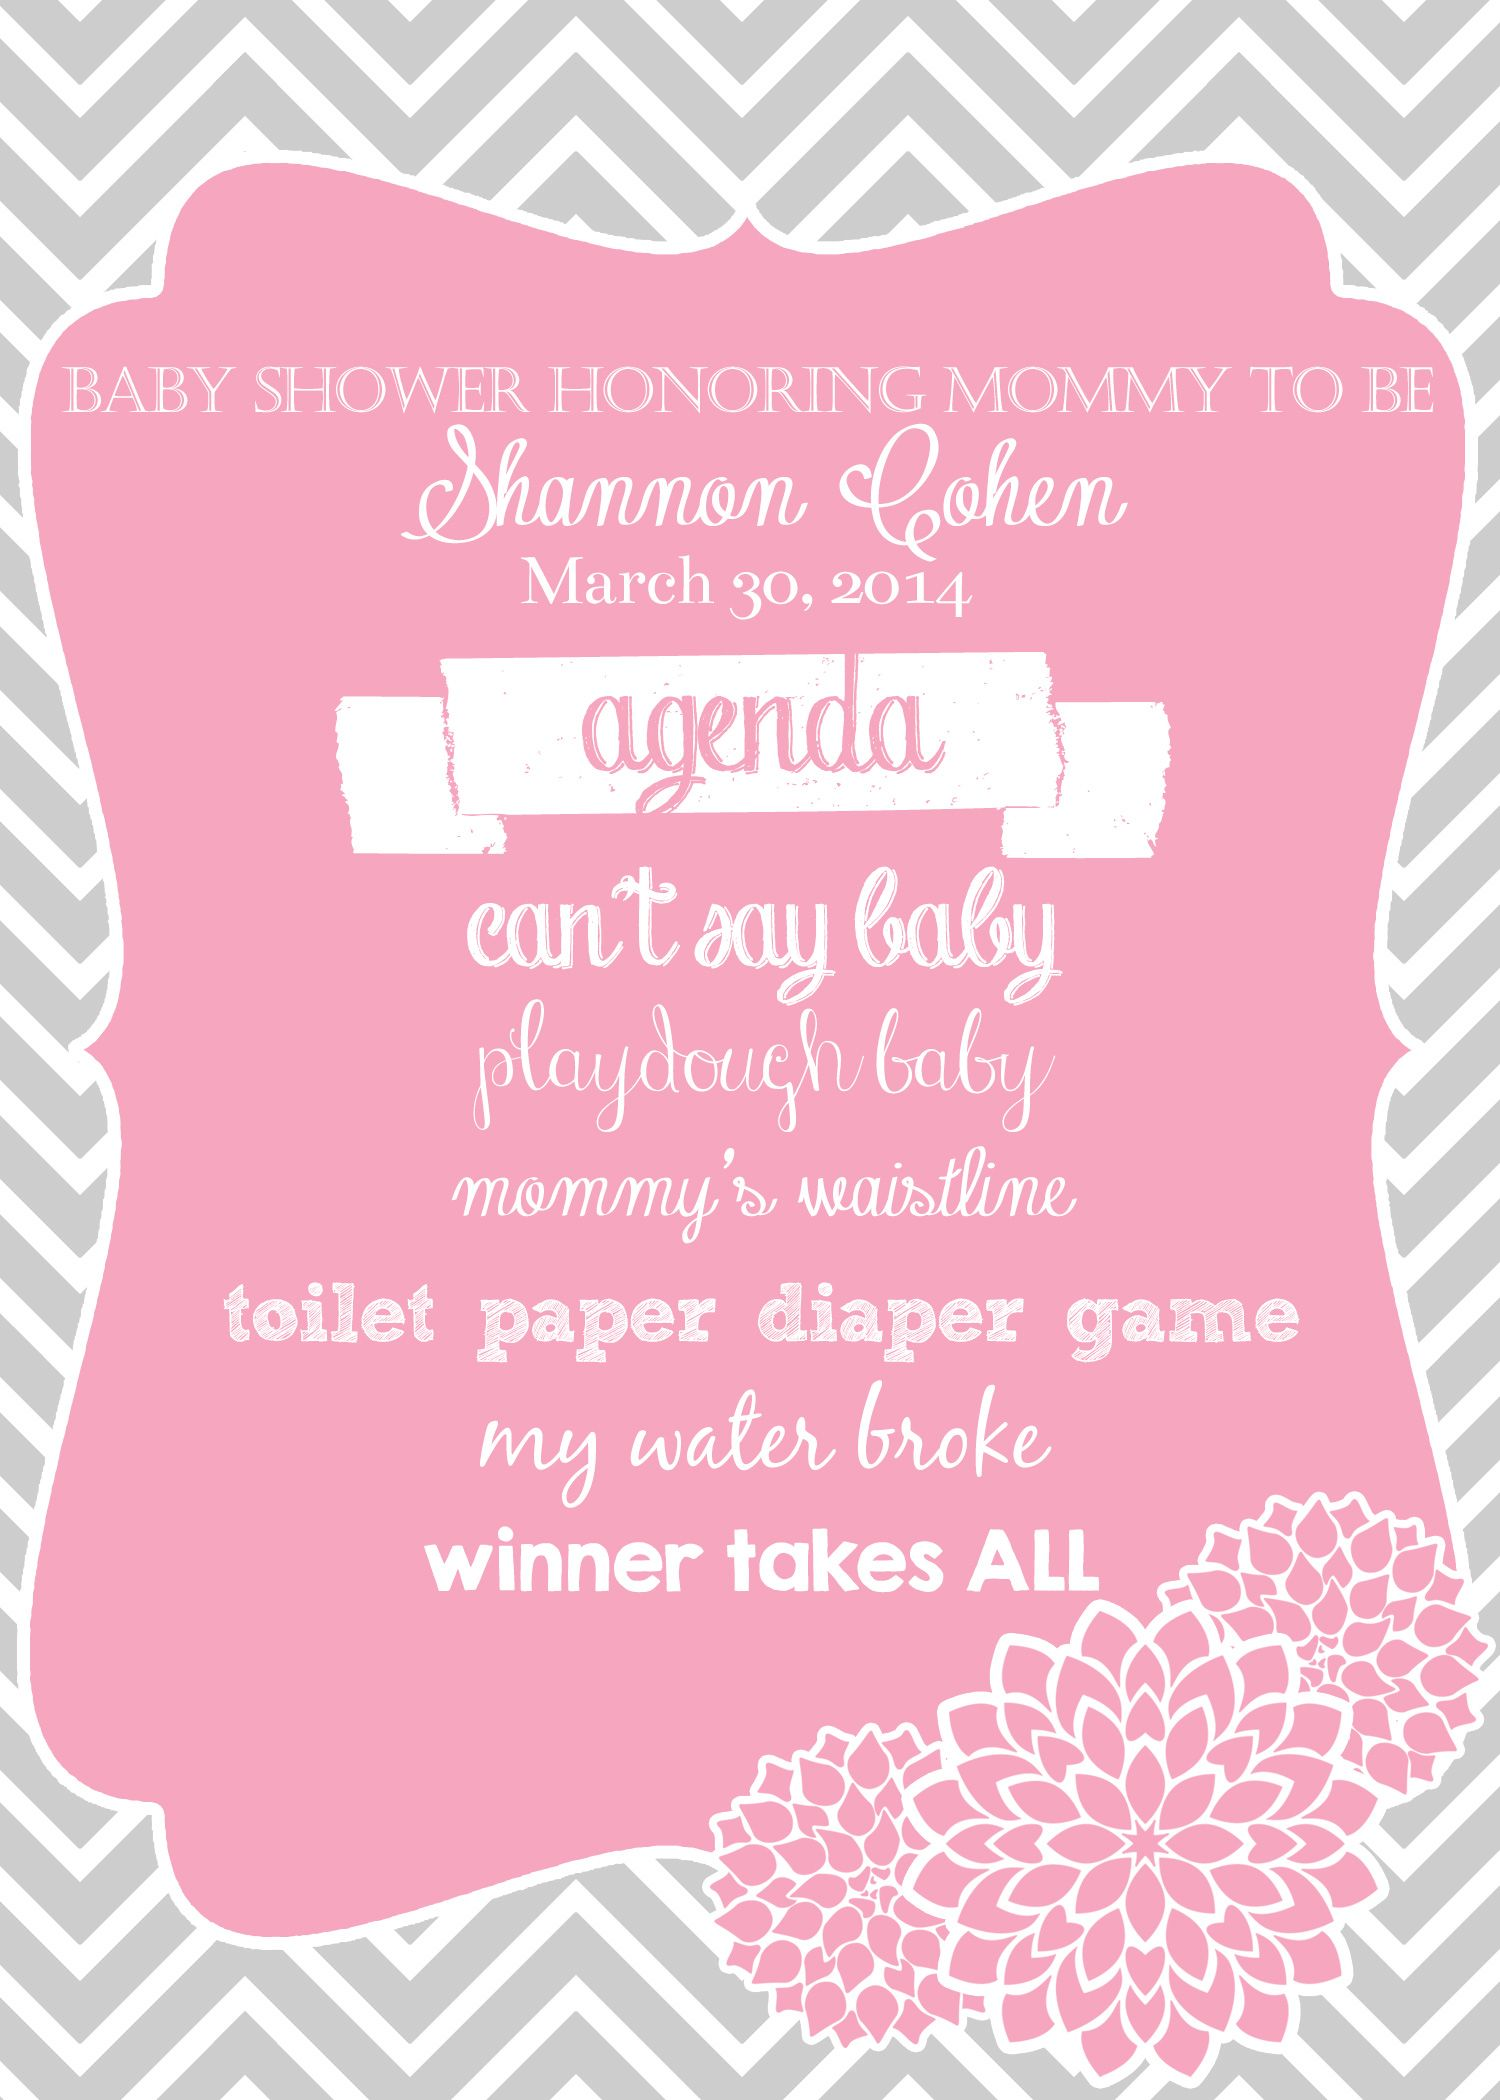 Camellia Events 14 West Graphics Baby Shower Agenda Baby Shower Program Brooklyn Baby Shower Baby Shower Parties